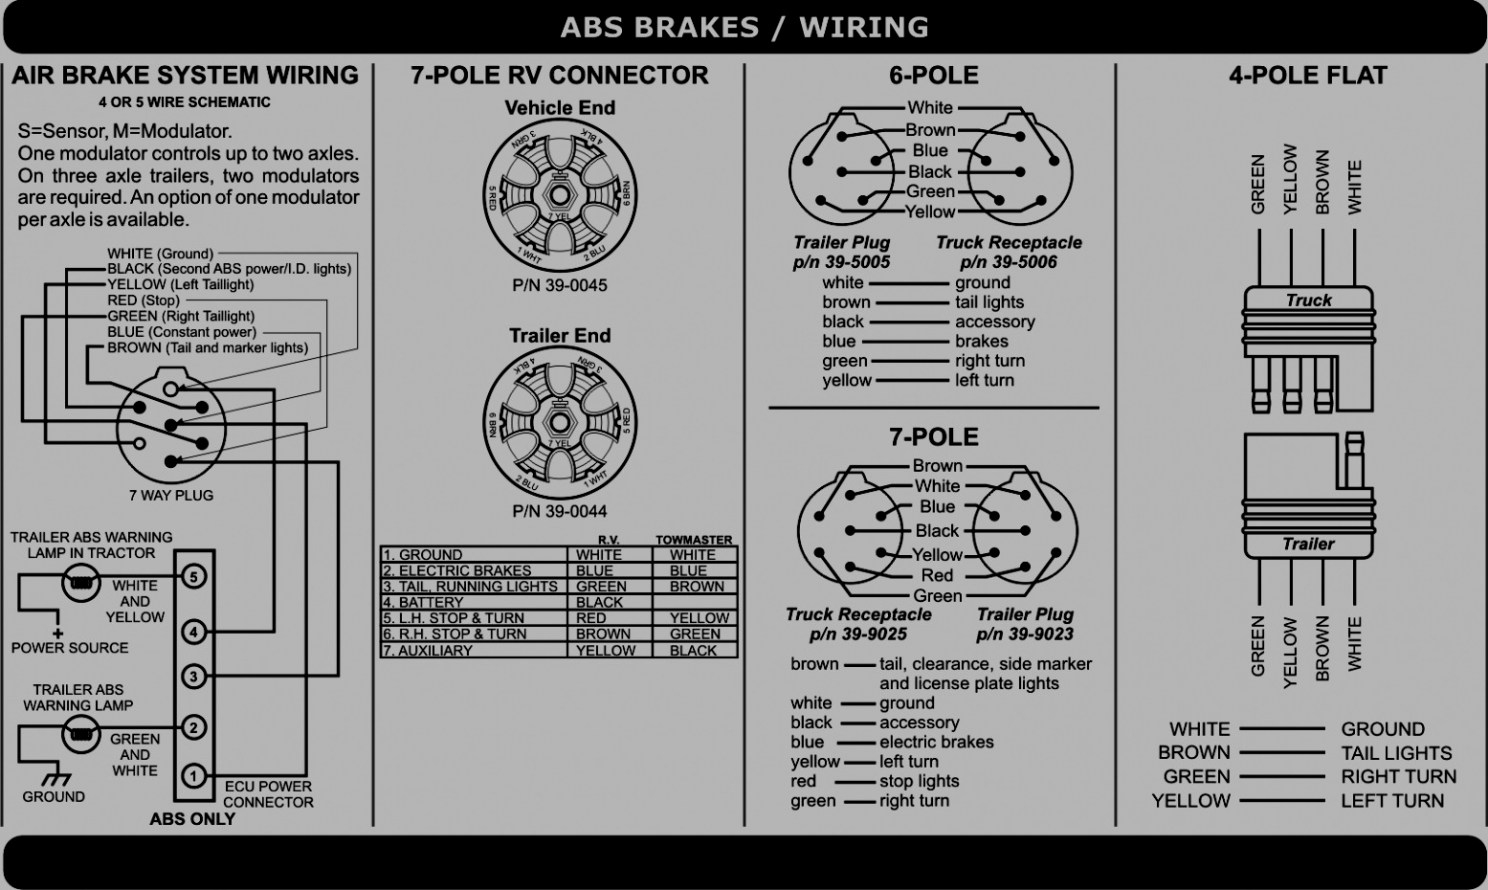 7 Round Rv Connector Wiring Diagram | Wiring Library - 7 Pole Trailer Wiring Diagram